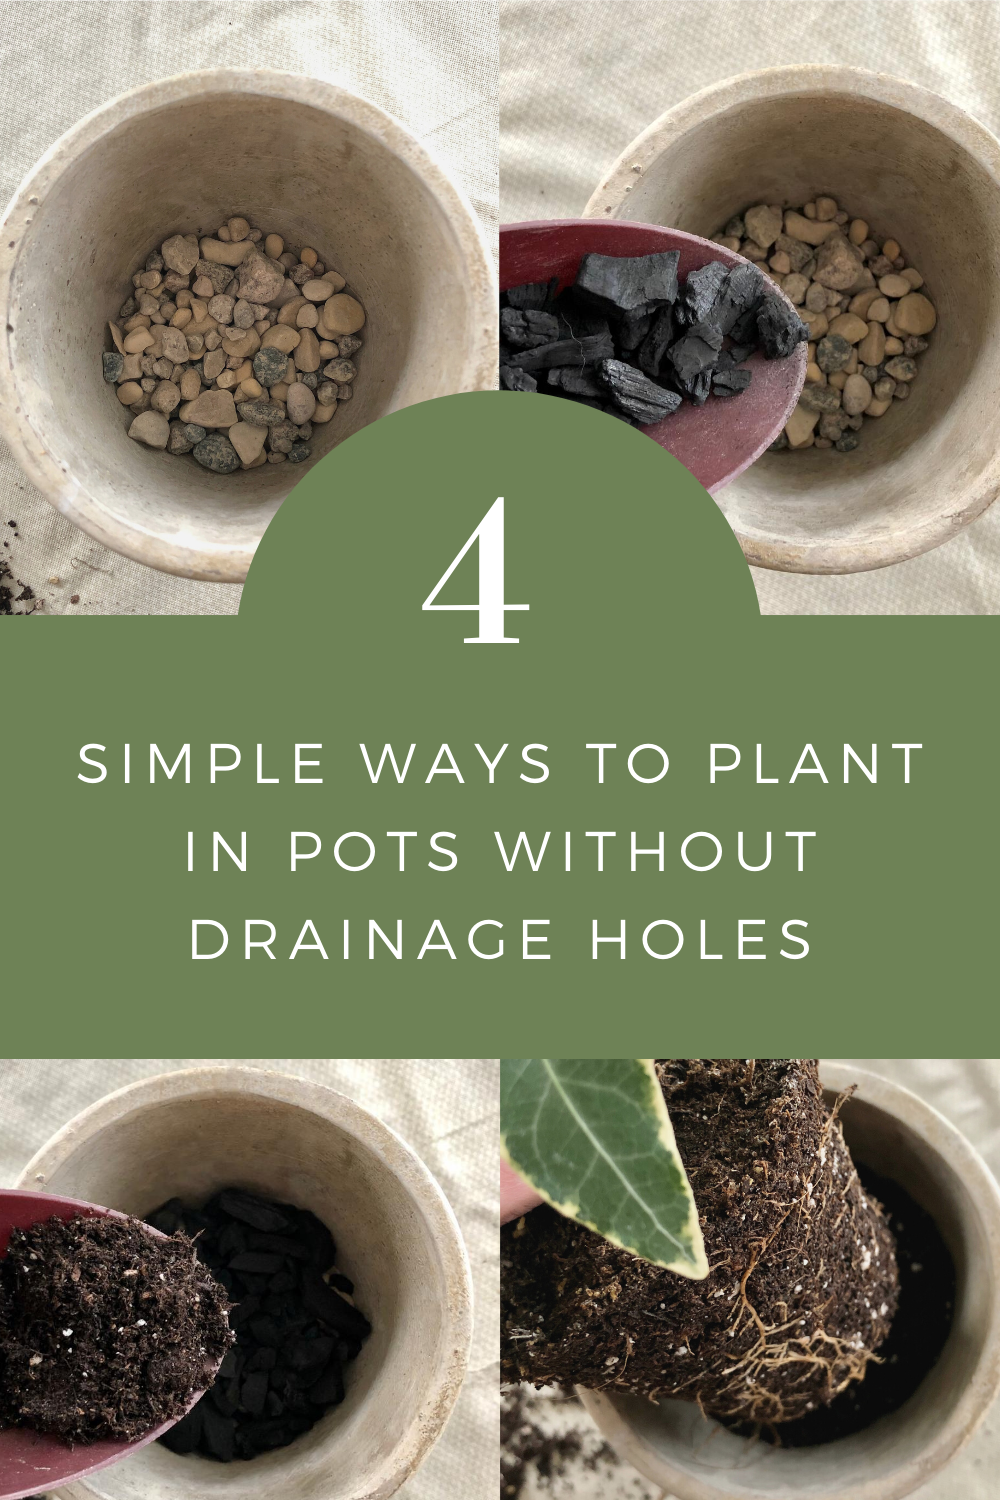 How to Plant in Pots Without Drainage Holes 4 Simple